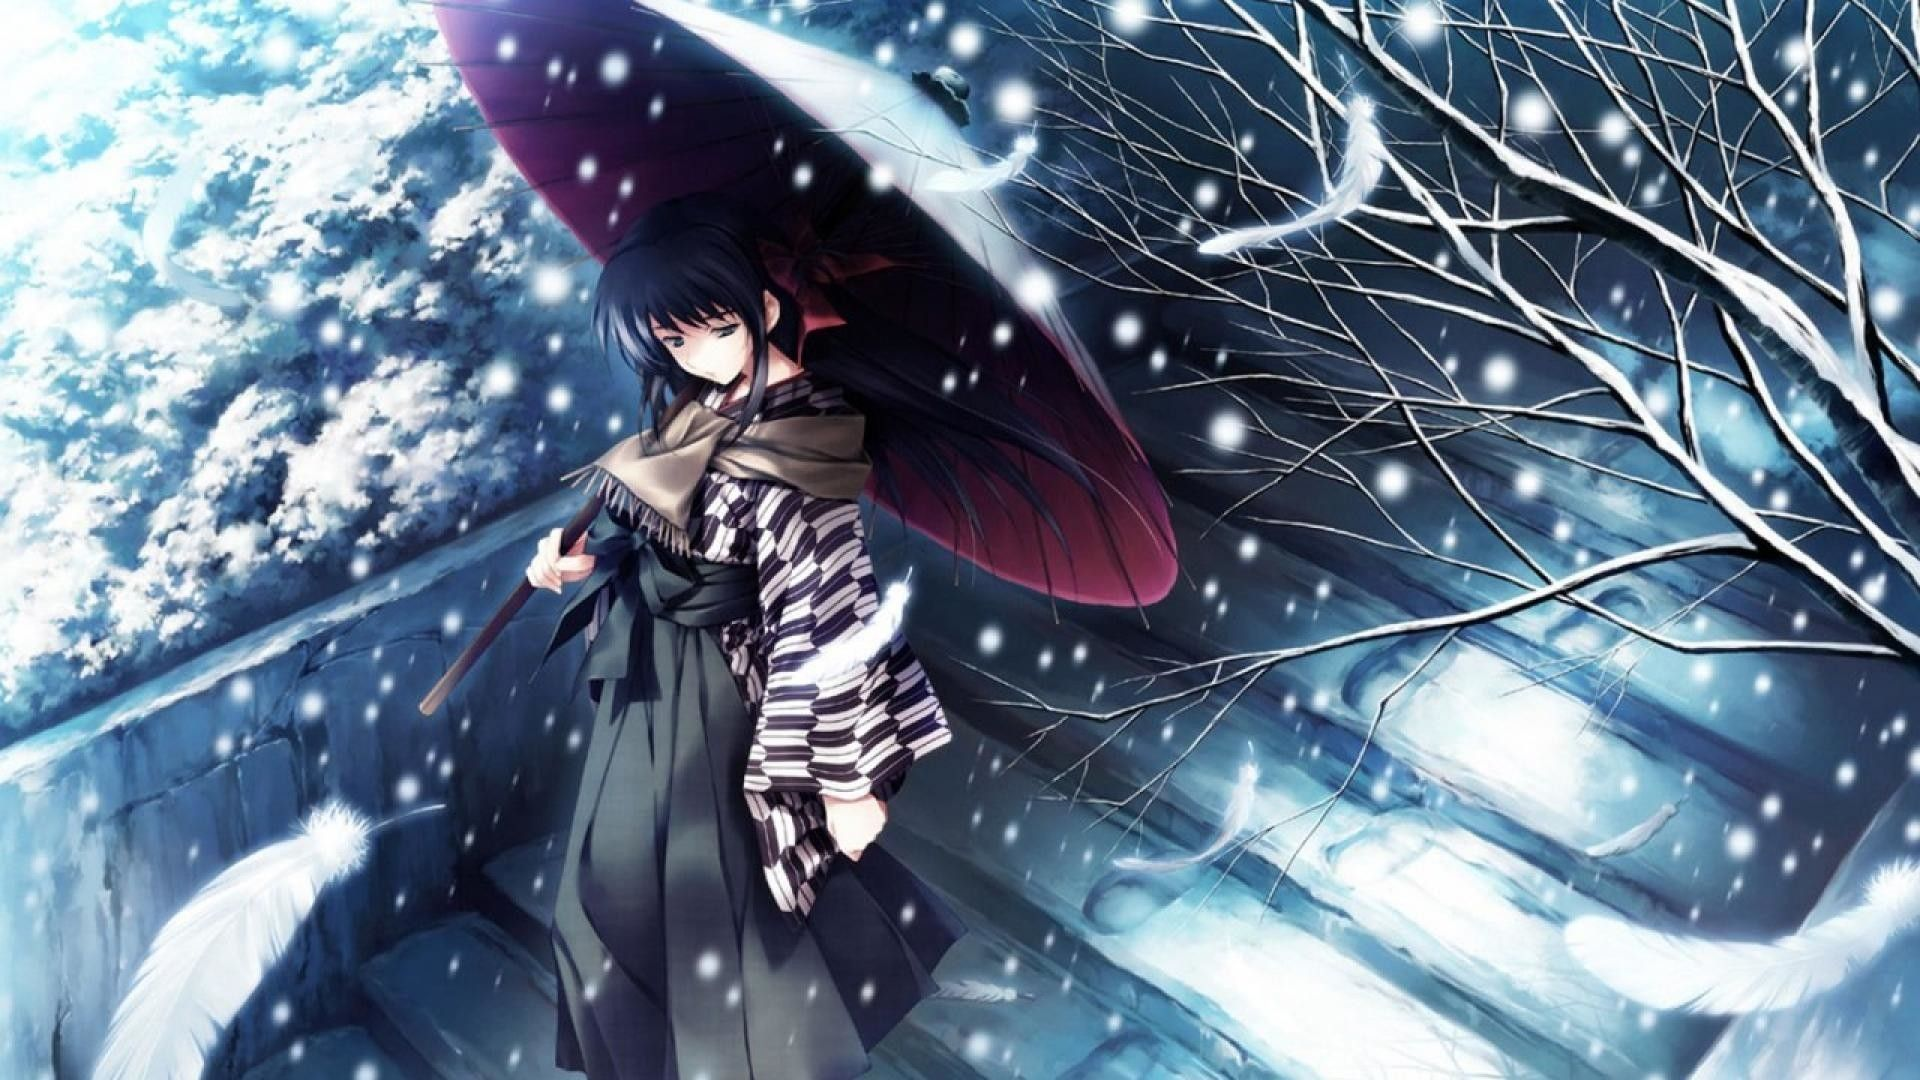 Pin By Sean On Winter Let It Snow Anime Wallpaper Hd Anime Wallpapers Anime Wallpaper Download